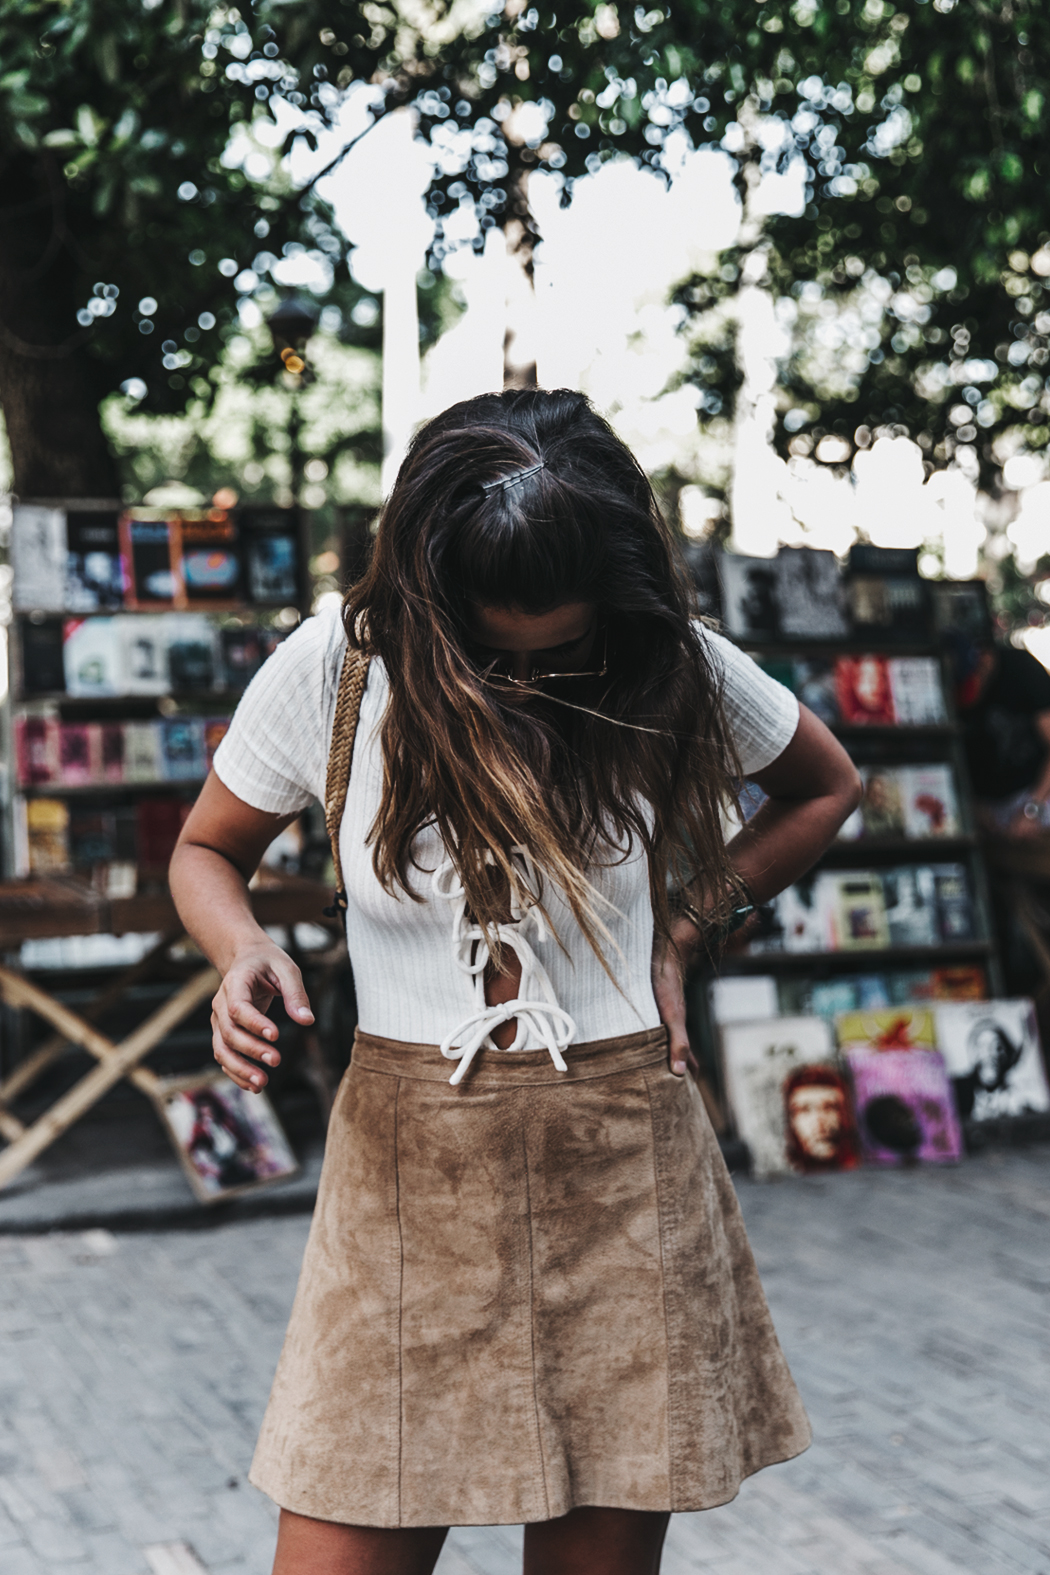 Cuba-Habana_Vieja-Suede_Skirt-Lace_UP_Body-Privacy_Please-Wedges-Outfit-Collage_Vintage-Travels-Street_Style-Backpack-56